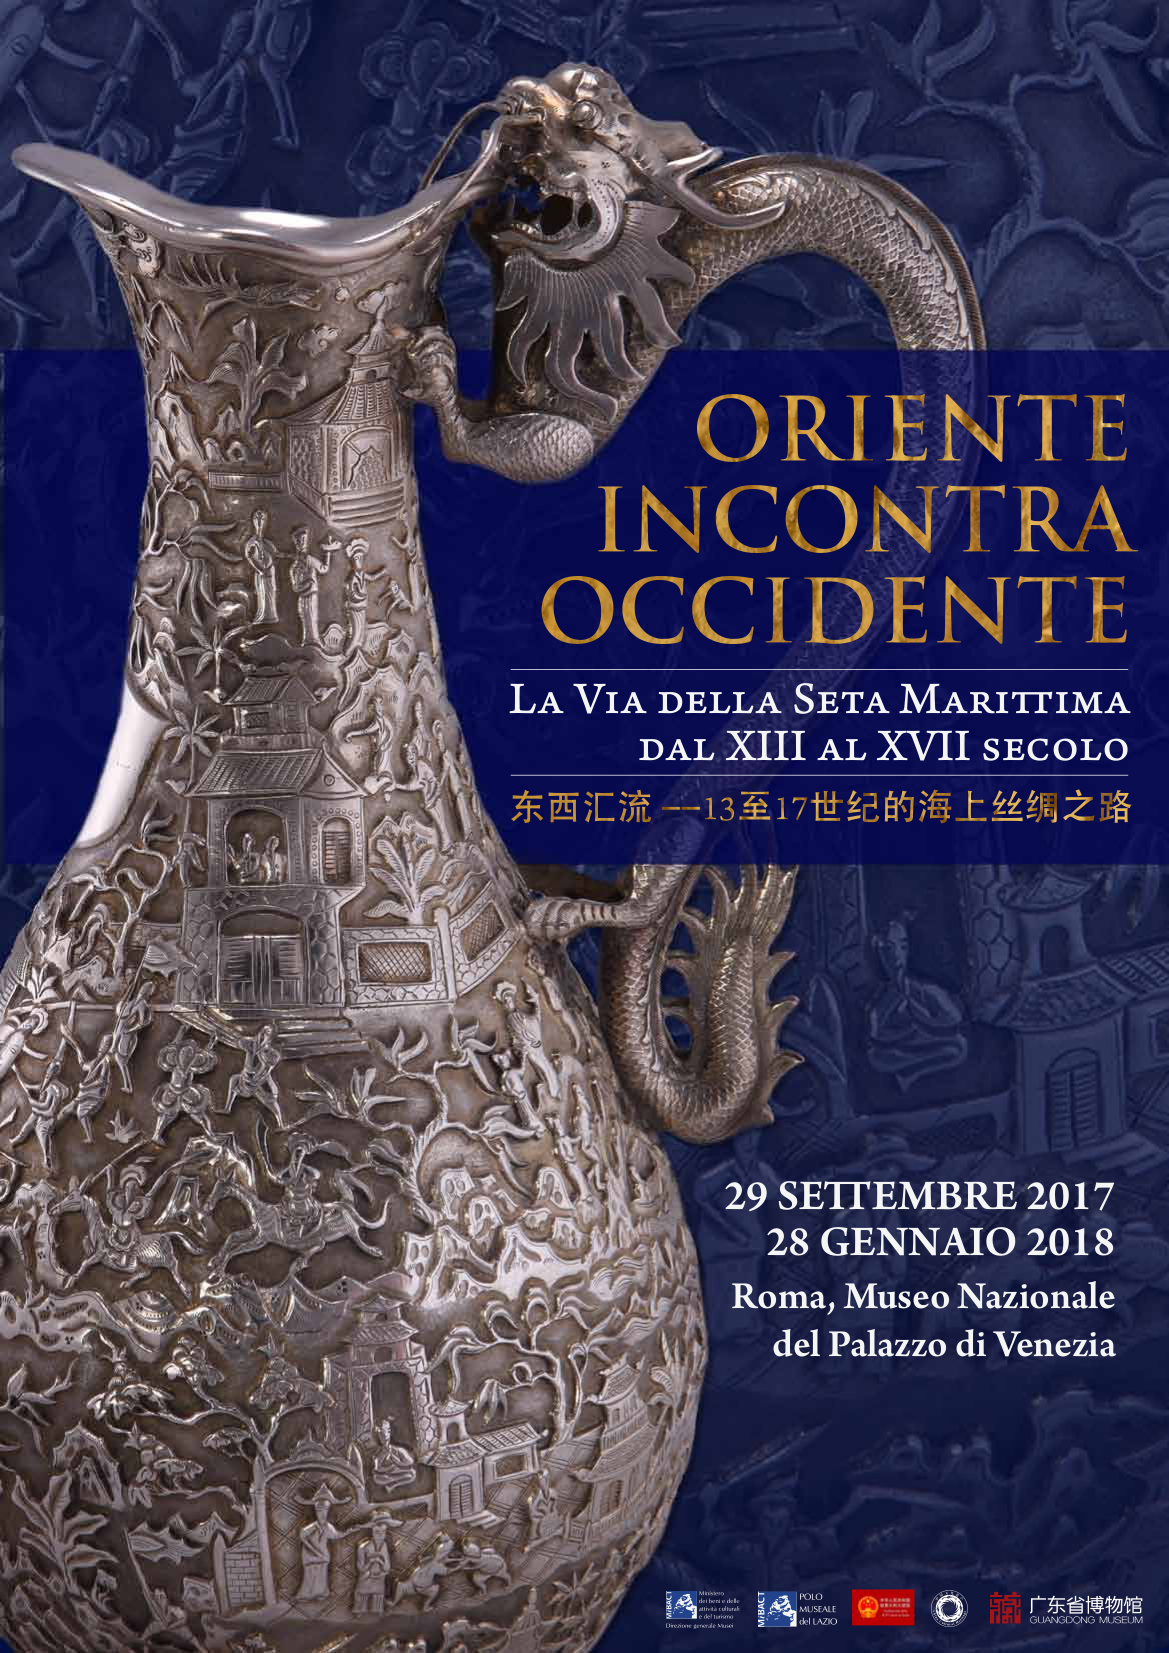 ORIENTE INCONTRA OCCIDENTE